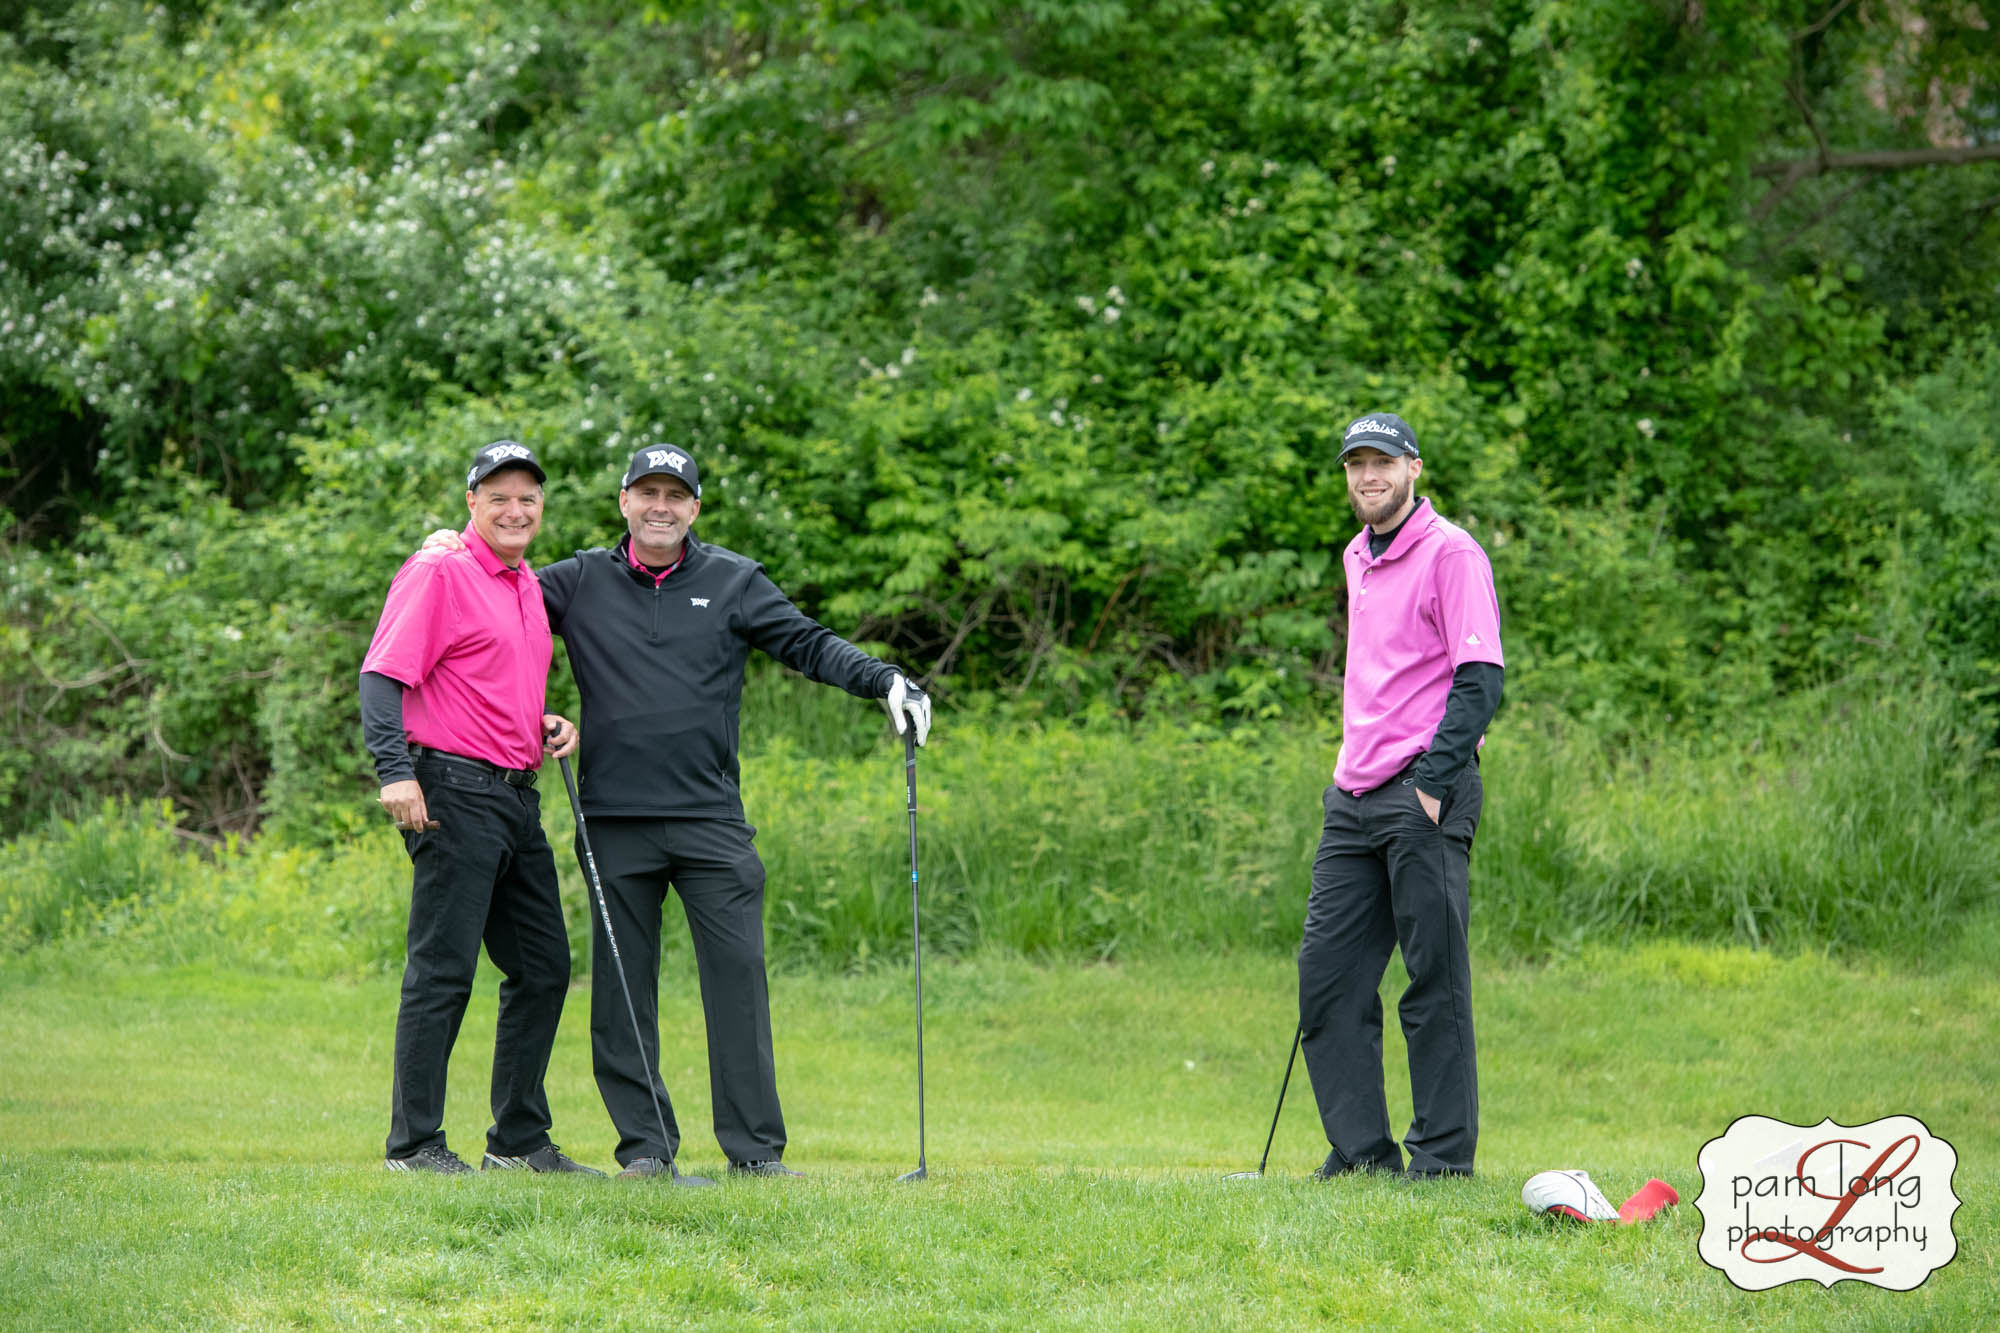 Pam Long Photography Blossoms of Hope Blossoms Pink Greens Golf Classic-55.jpg